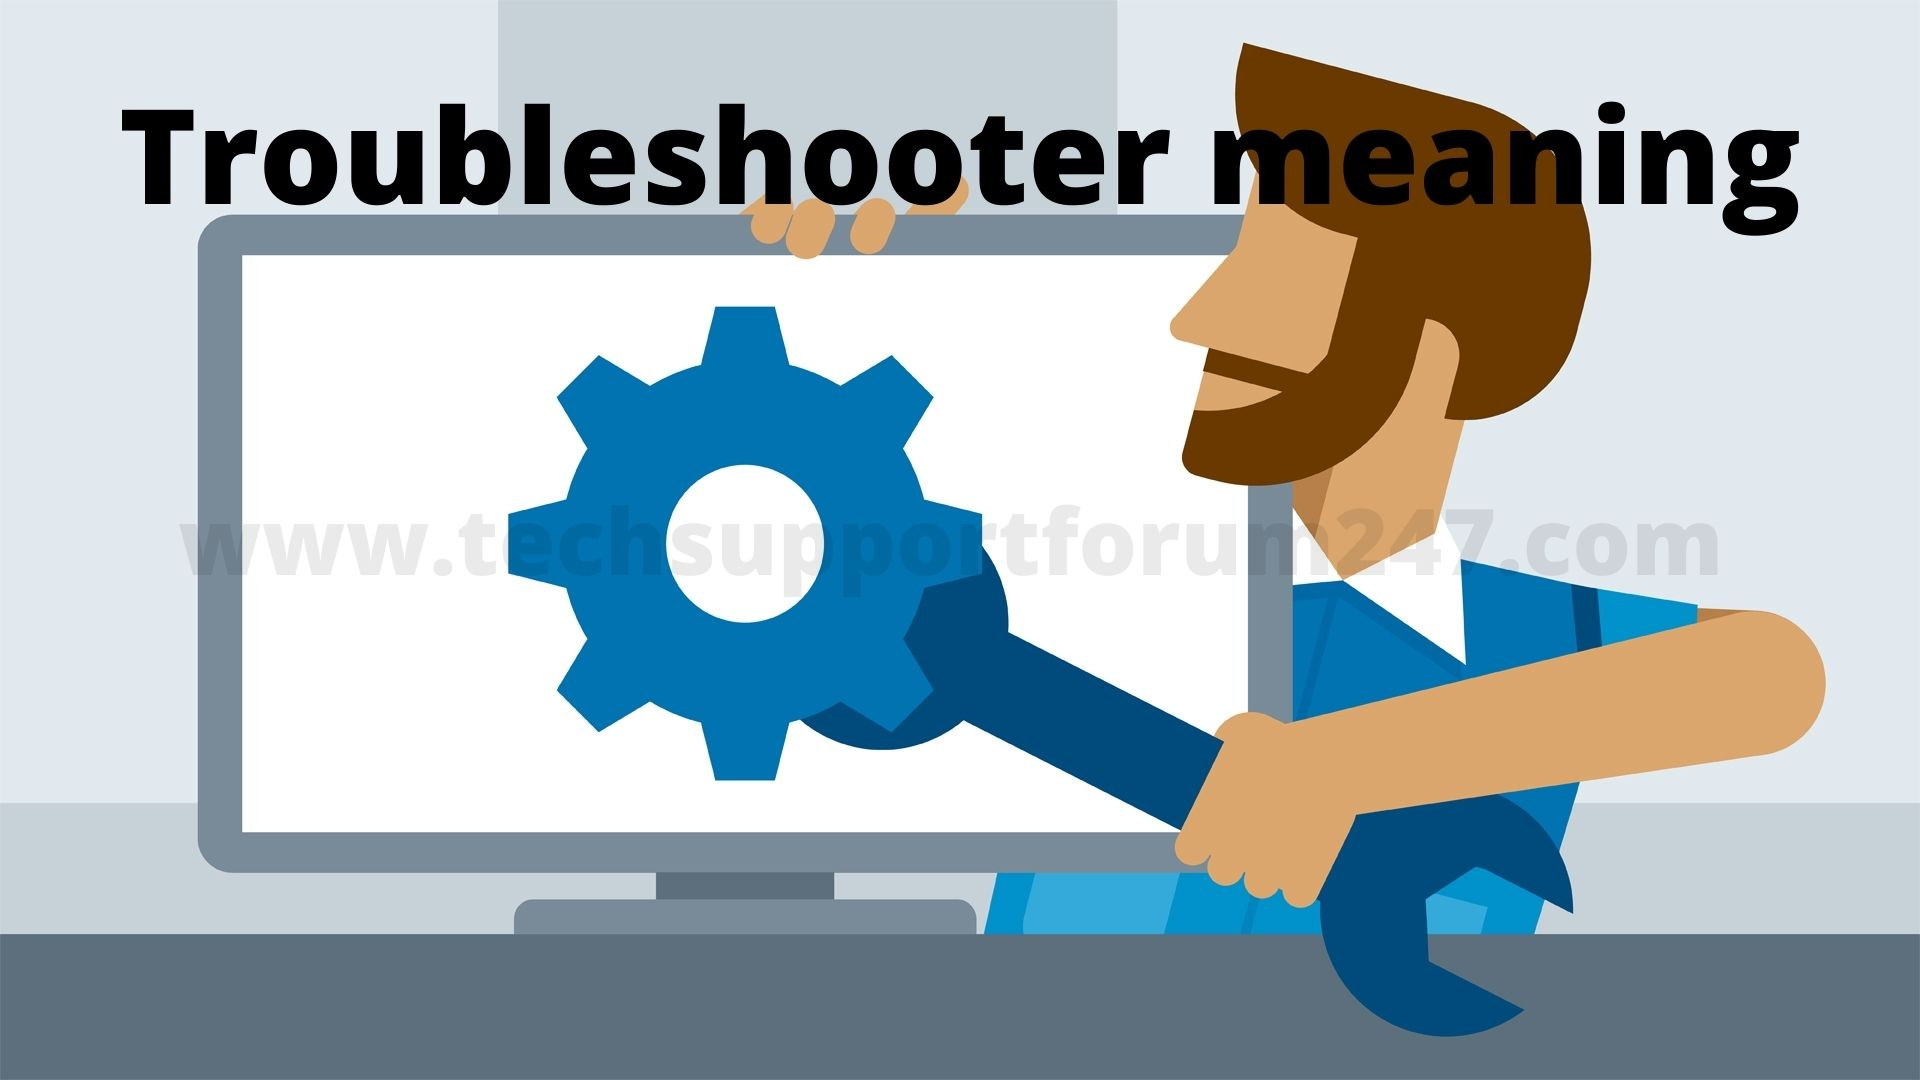 Troubleshooter meaning